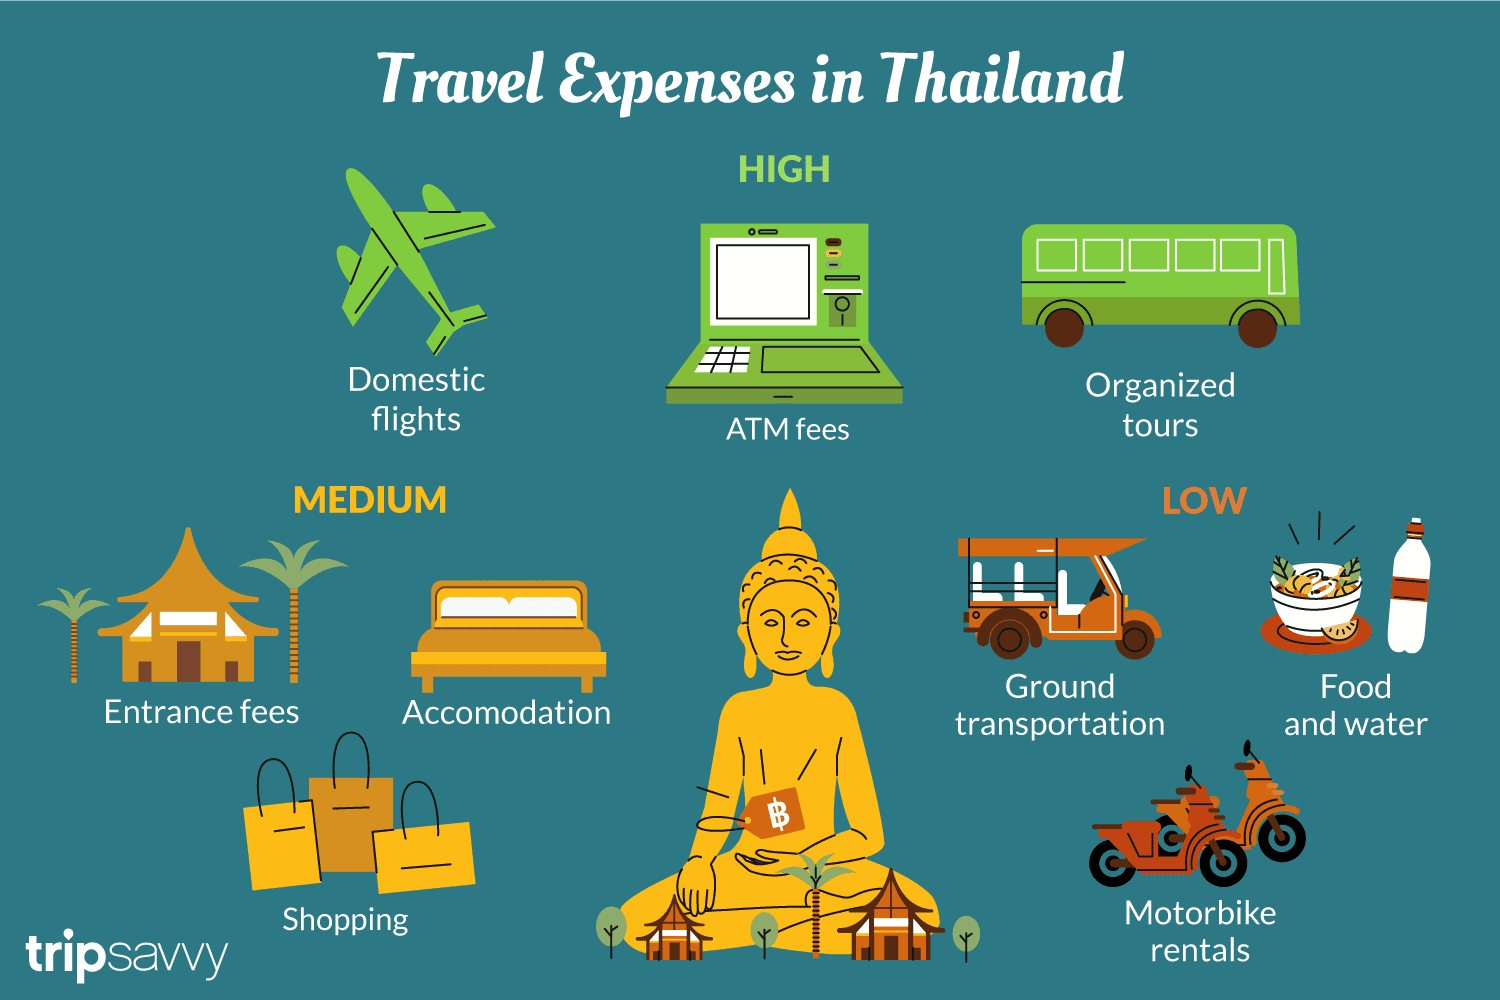 How Much Money Is Needed for a Trip to Thailand